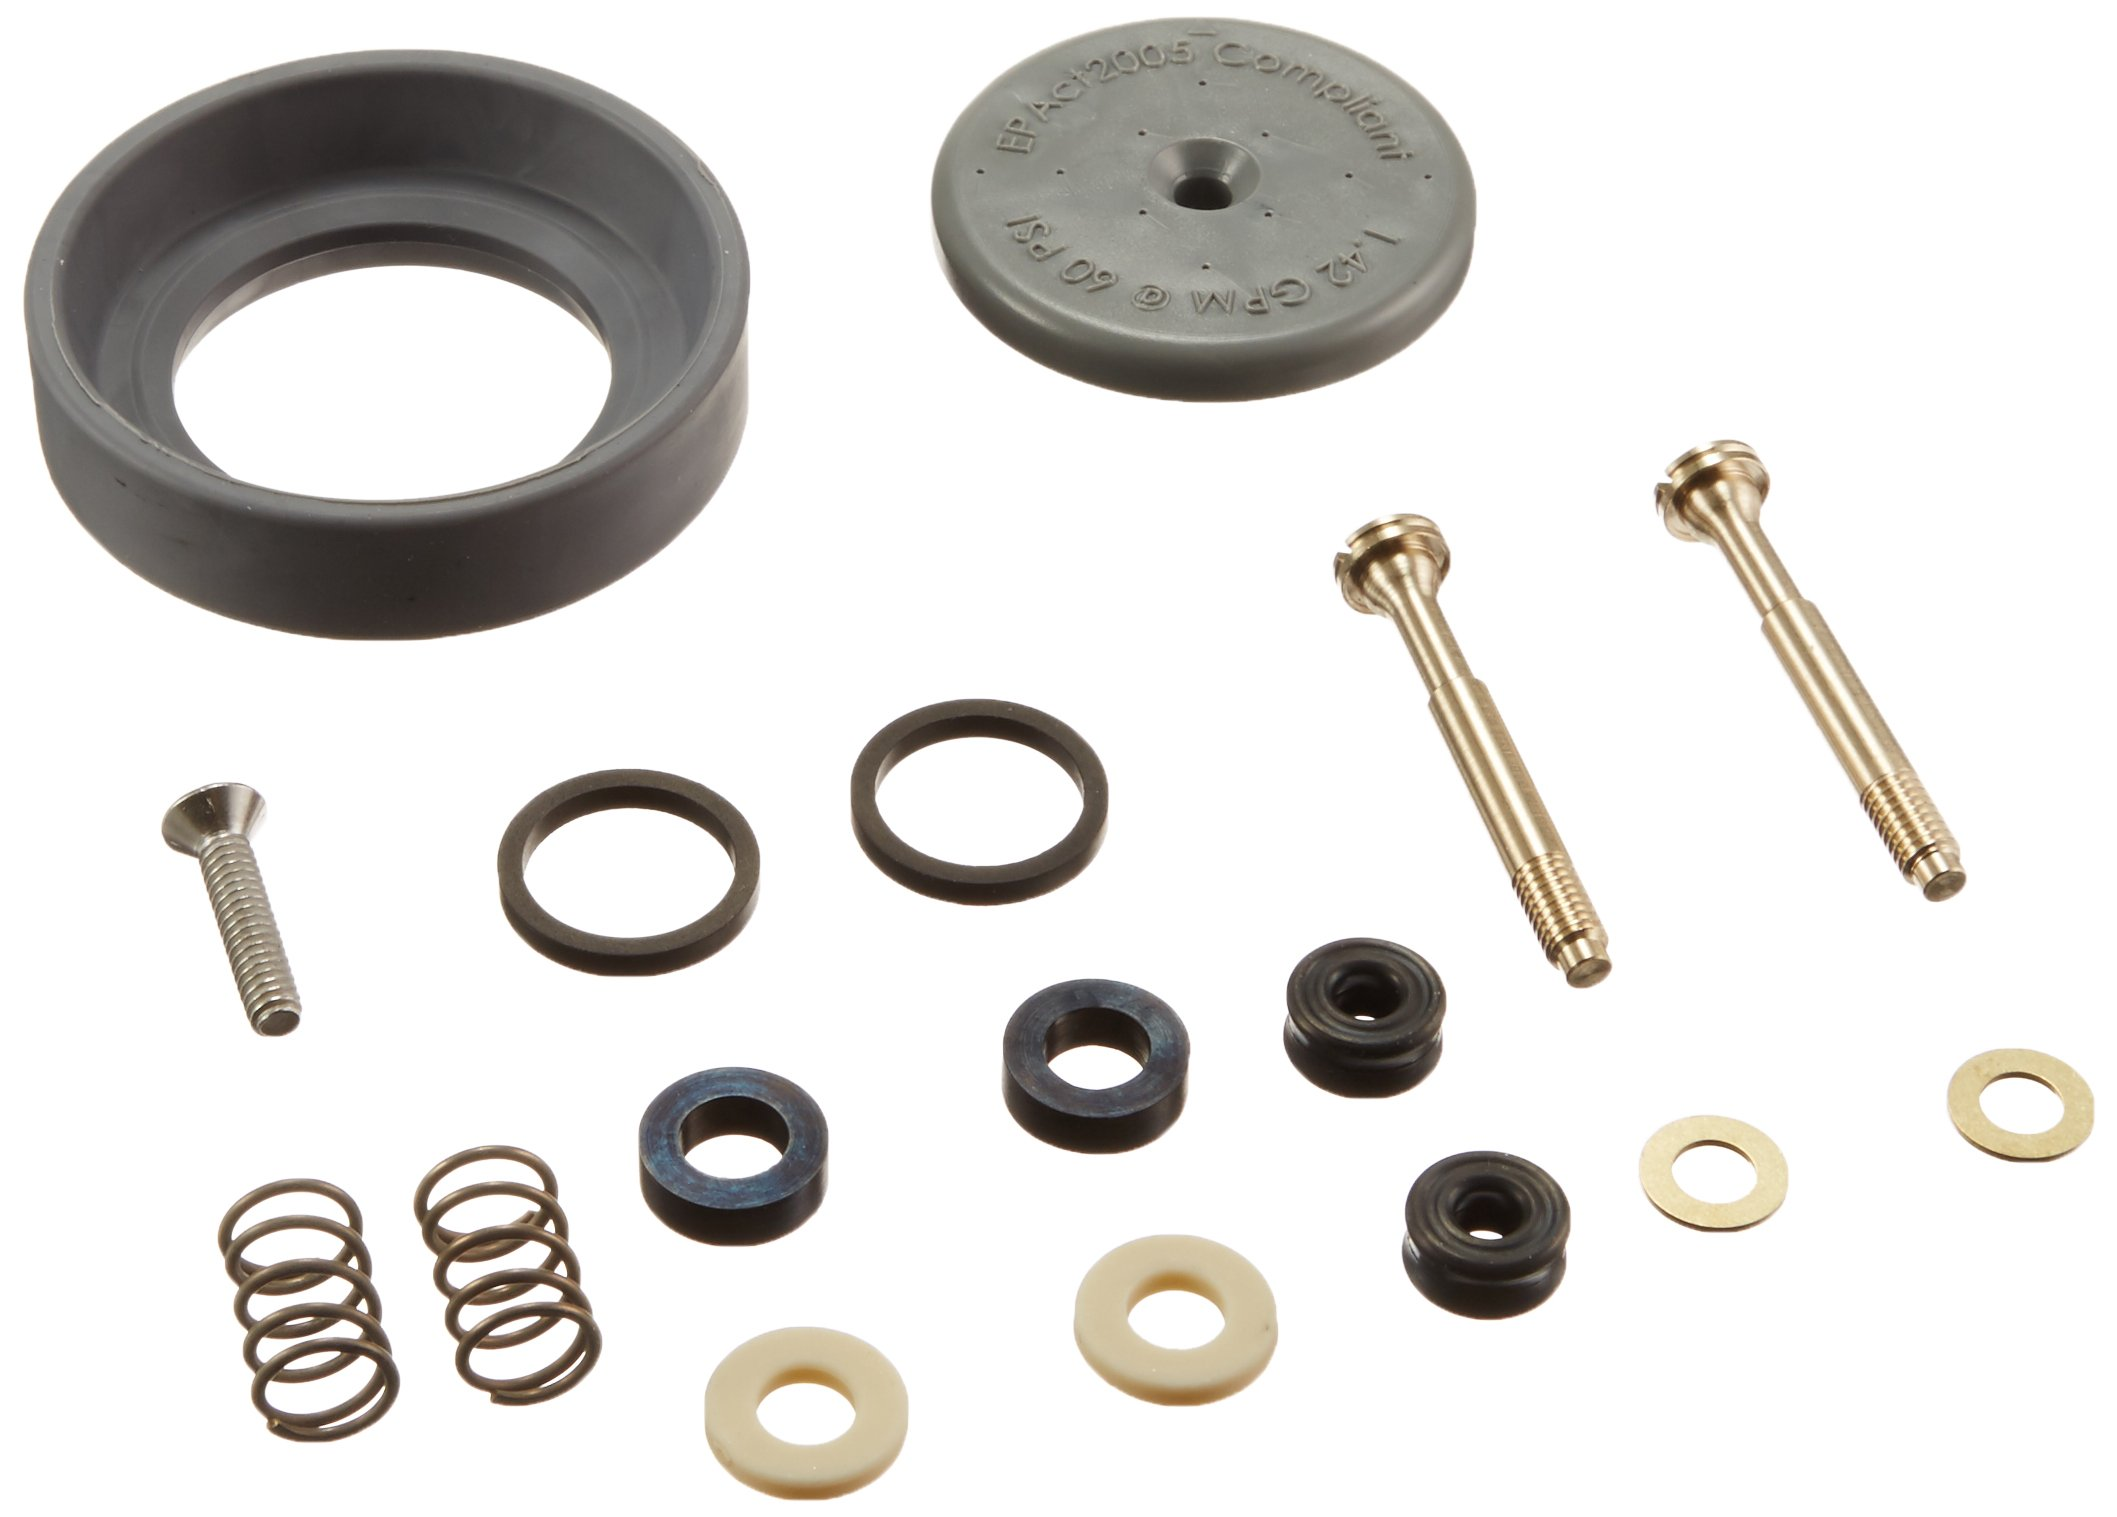 TS Brass B-10K Repair Kit for Spray Valve